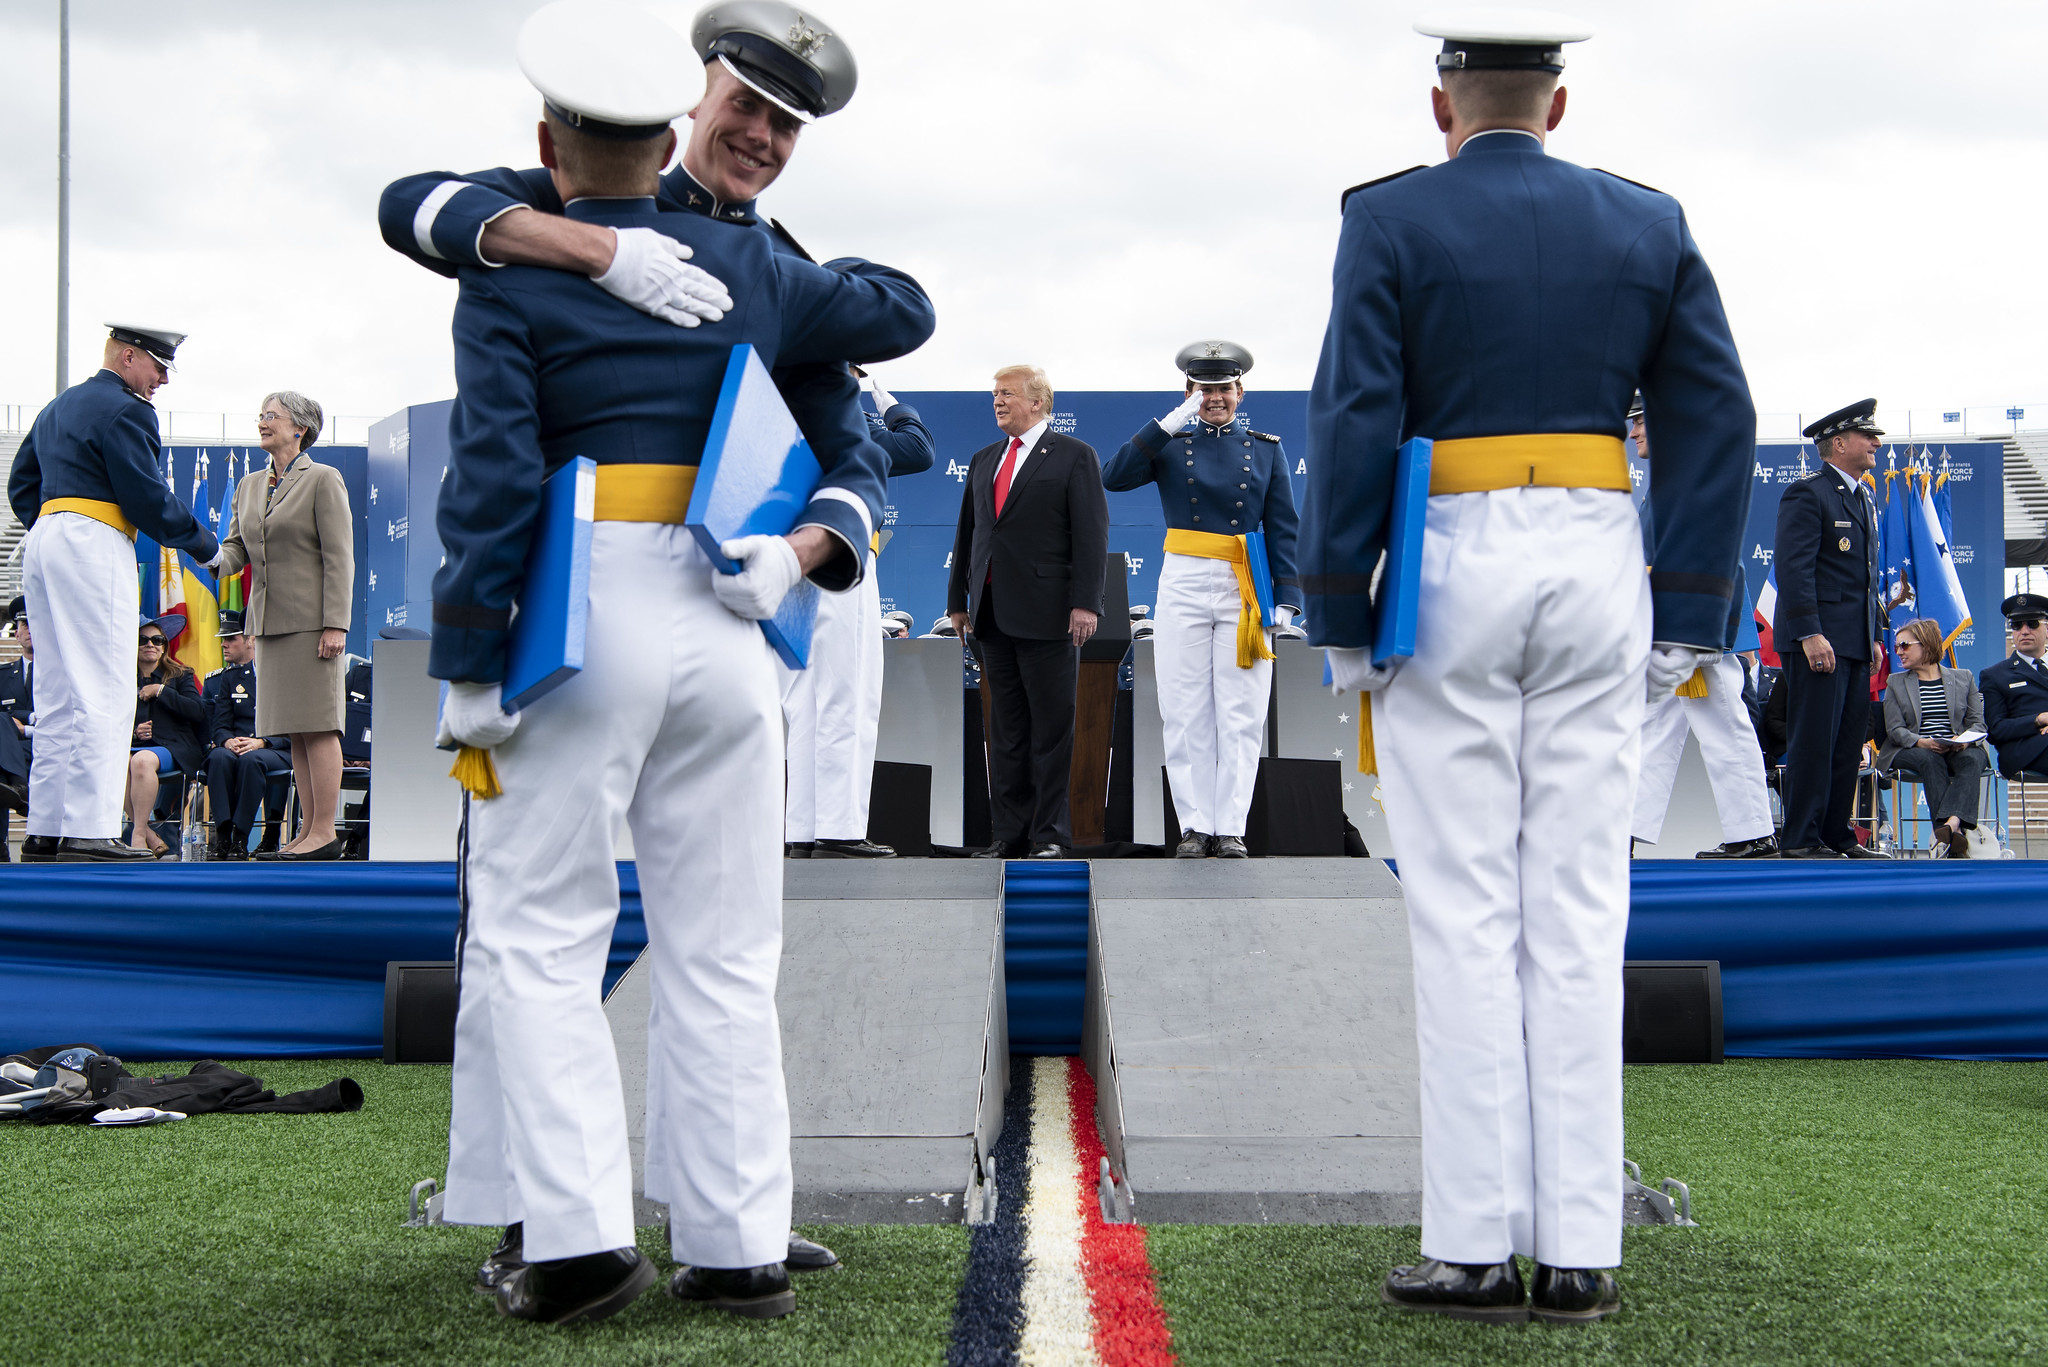 President Donald Trump congratulates cadets at the U.S. Air Force Academy graduation at Falcon Stadium in Colorado Springs, Colo., May 30, 2019. Nine-hundred-eighty-nine cadets graduated to become the newest 2nd lieutenants in the Air Force. (Joshua Armstrong/Air Force)